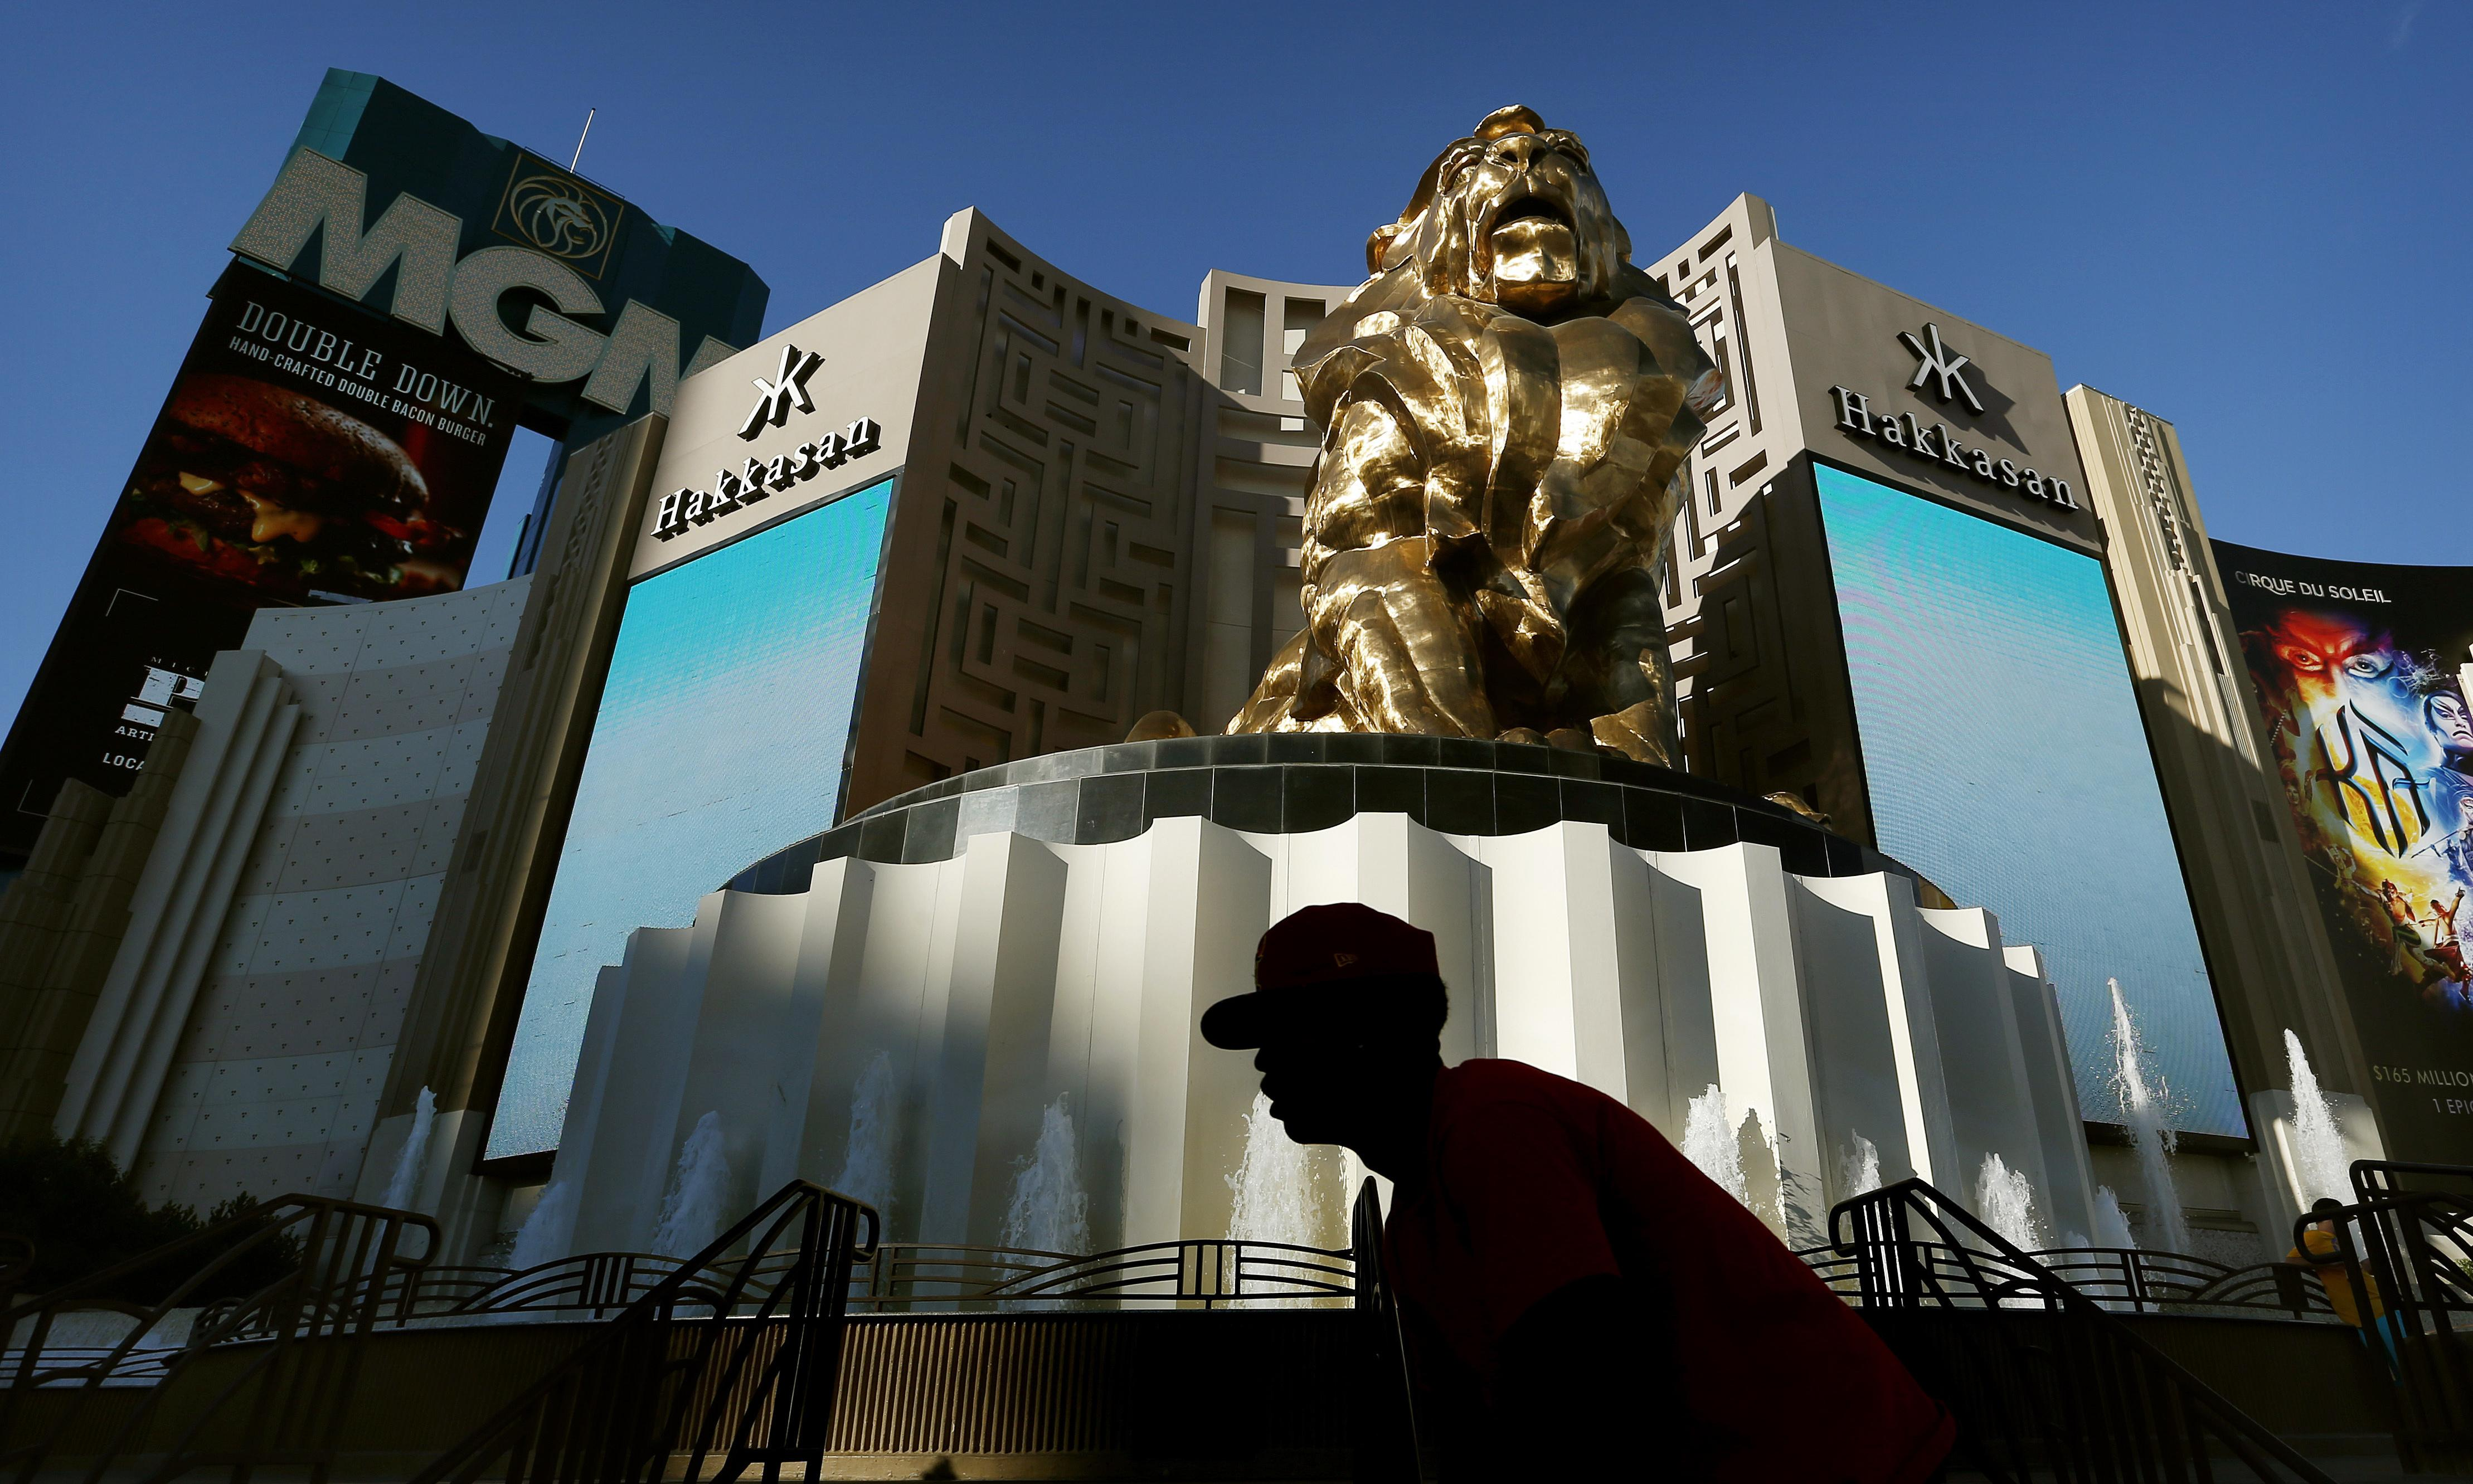 Personal details of 10.6m MGM hotel guests revealed by hackers, report says